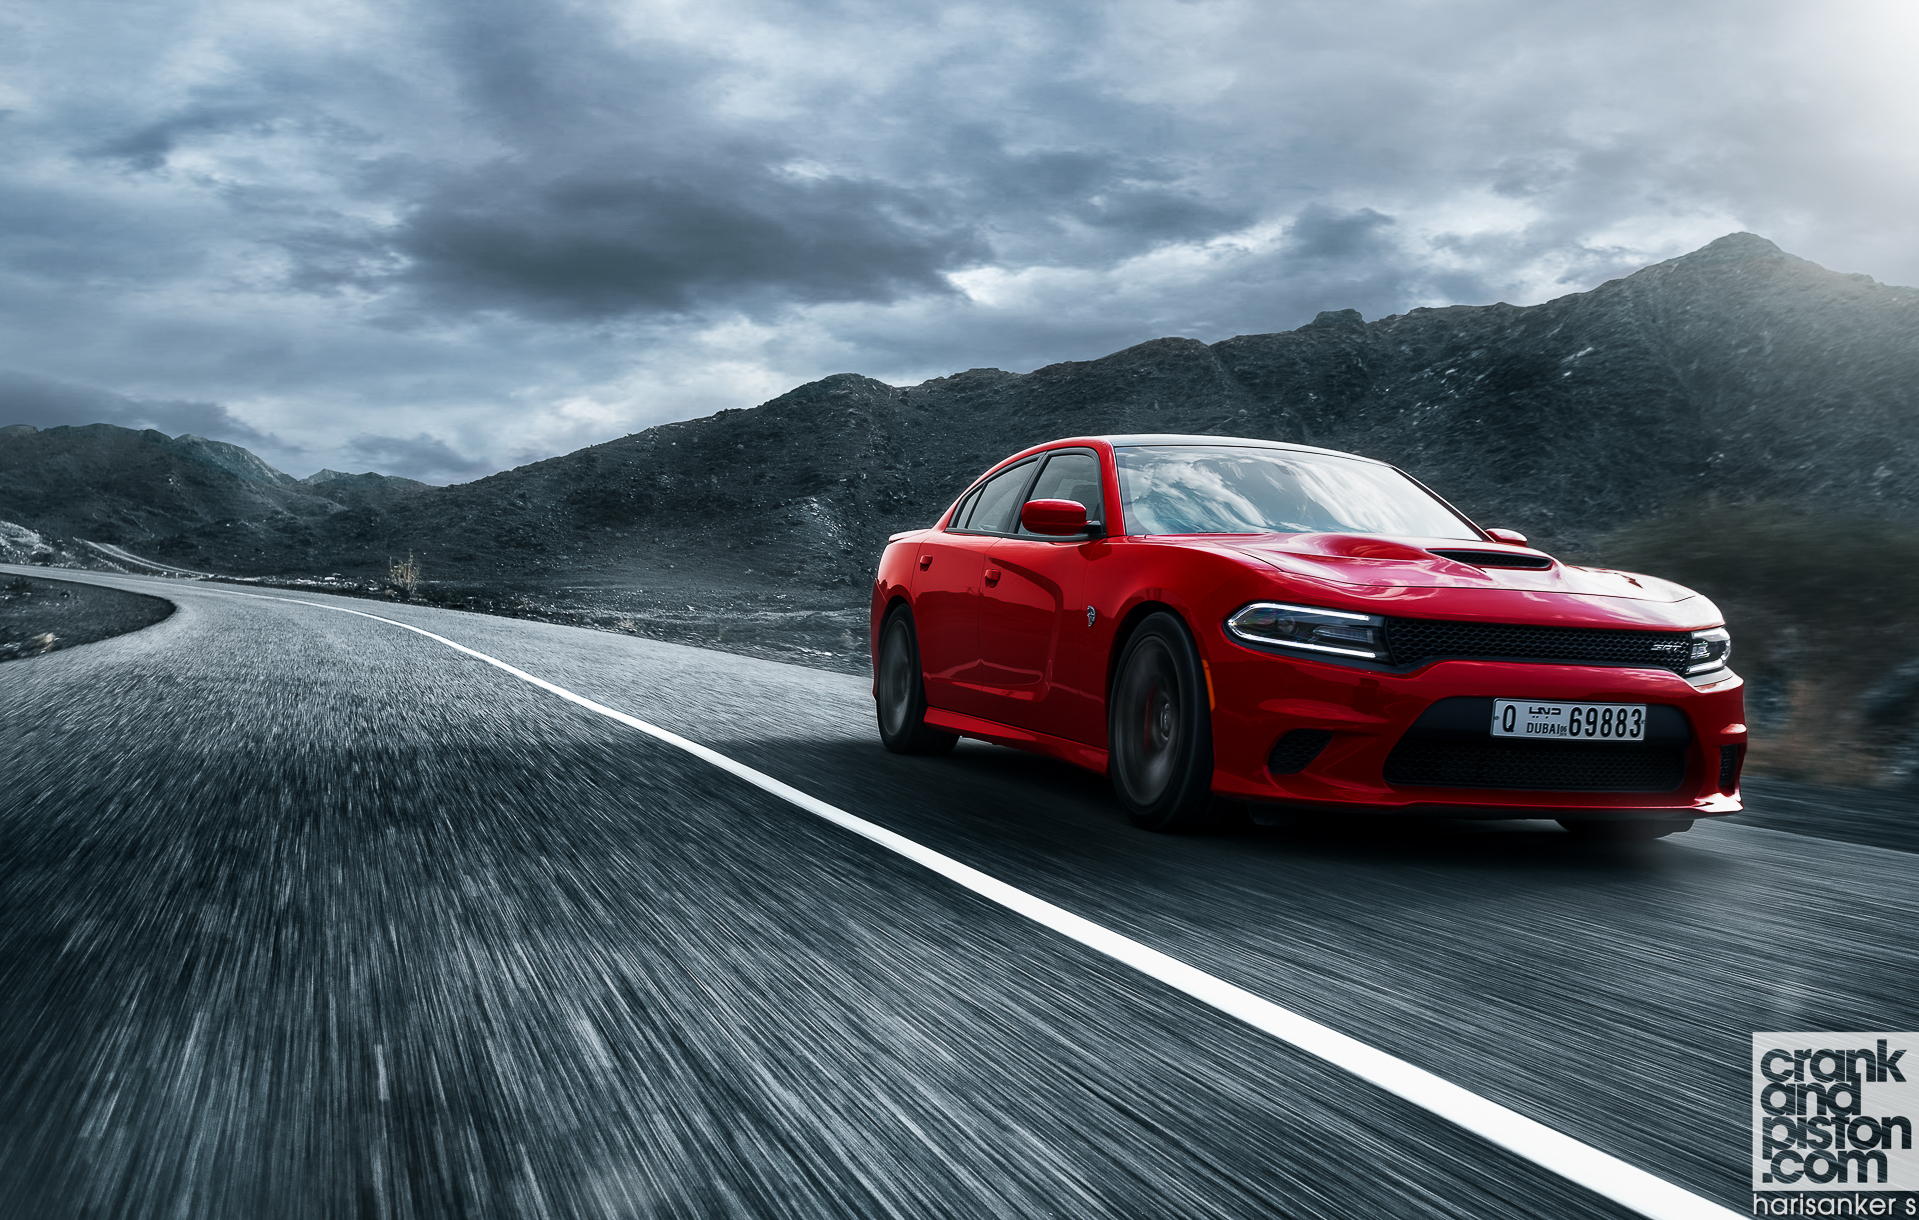 Dodge Charger Hellcat WALLPAPERS Crankandpiston 3